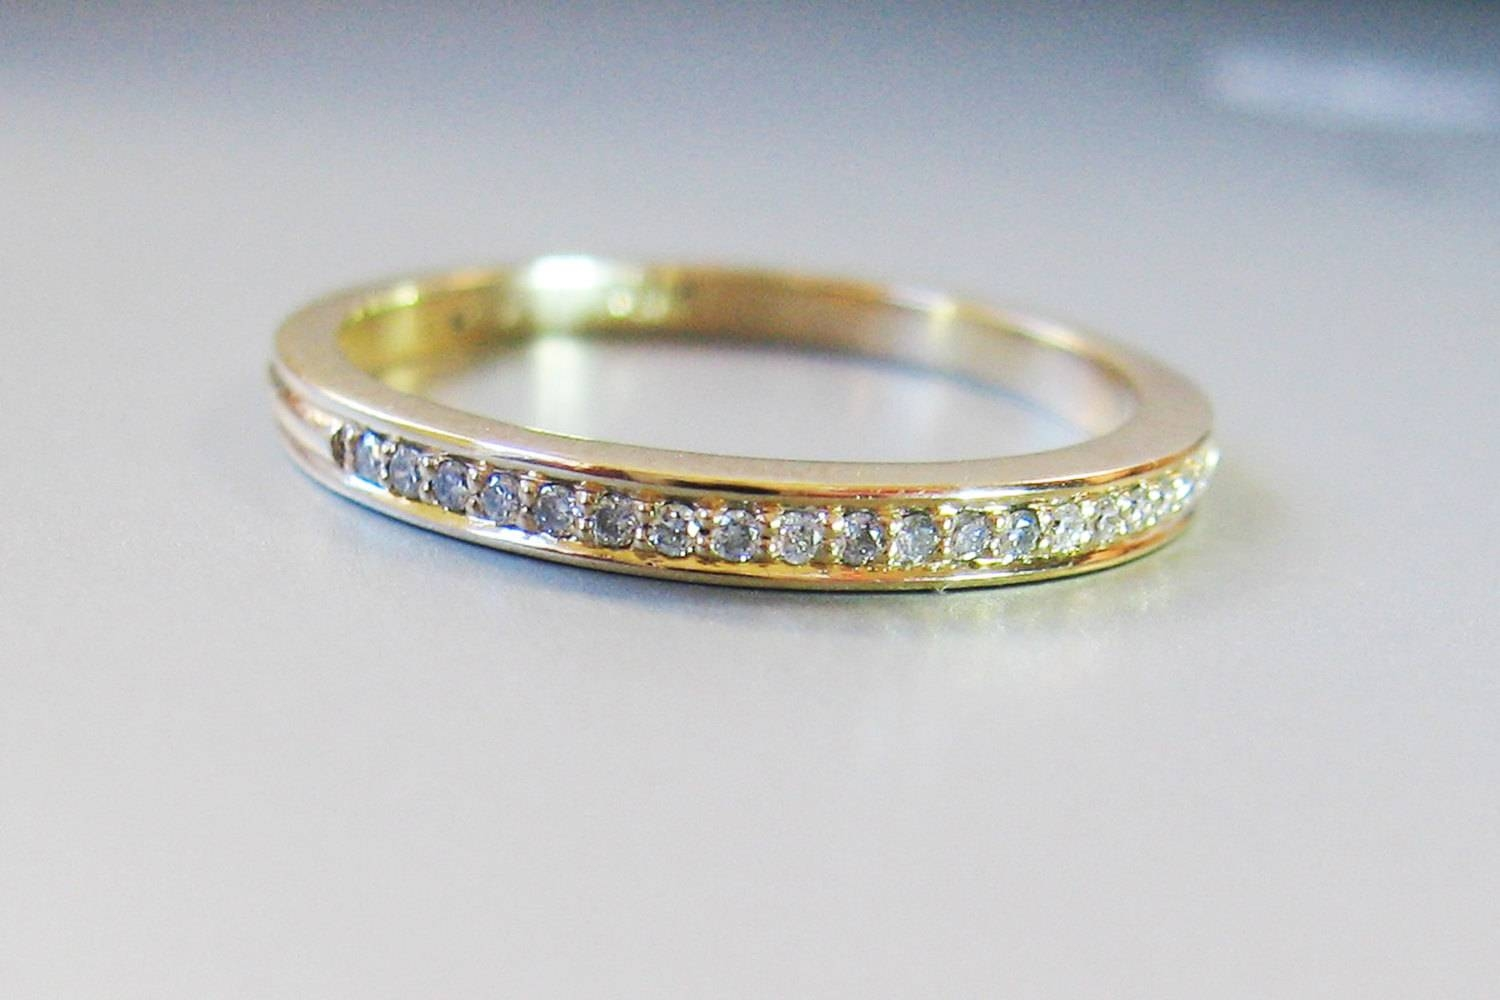 Micro Pave Diamond Eternity Ring 2mm In 14k Gold, Handmade Diamond Intended For Small Diamond Wedding Bands (View 2 of 15)